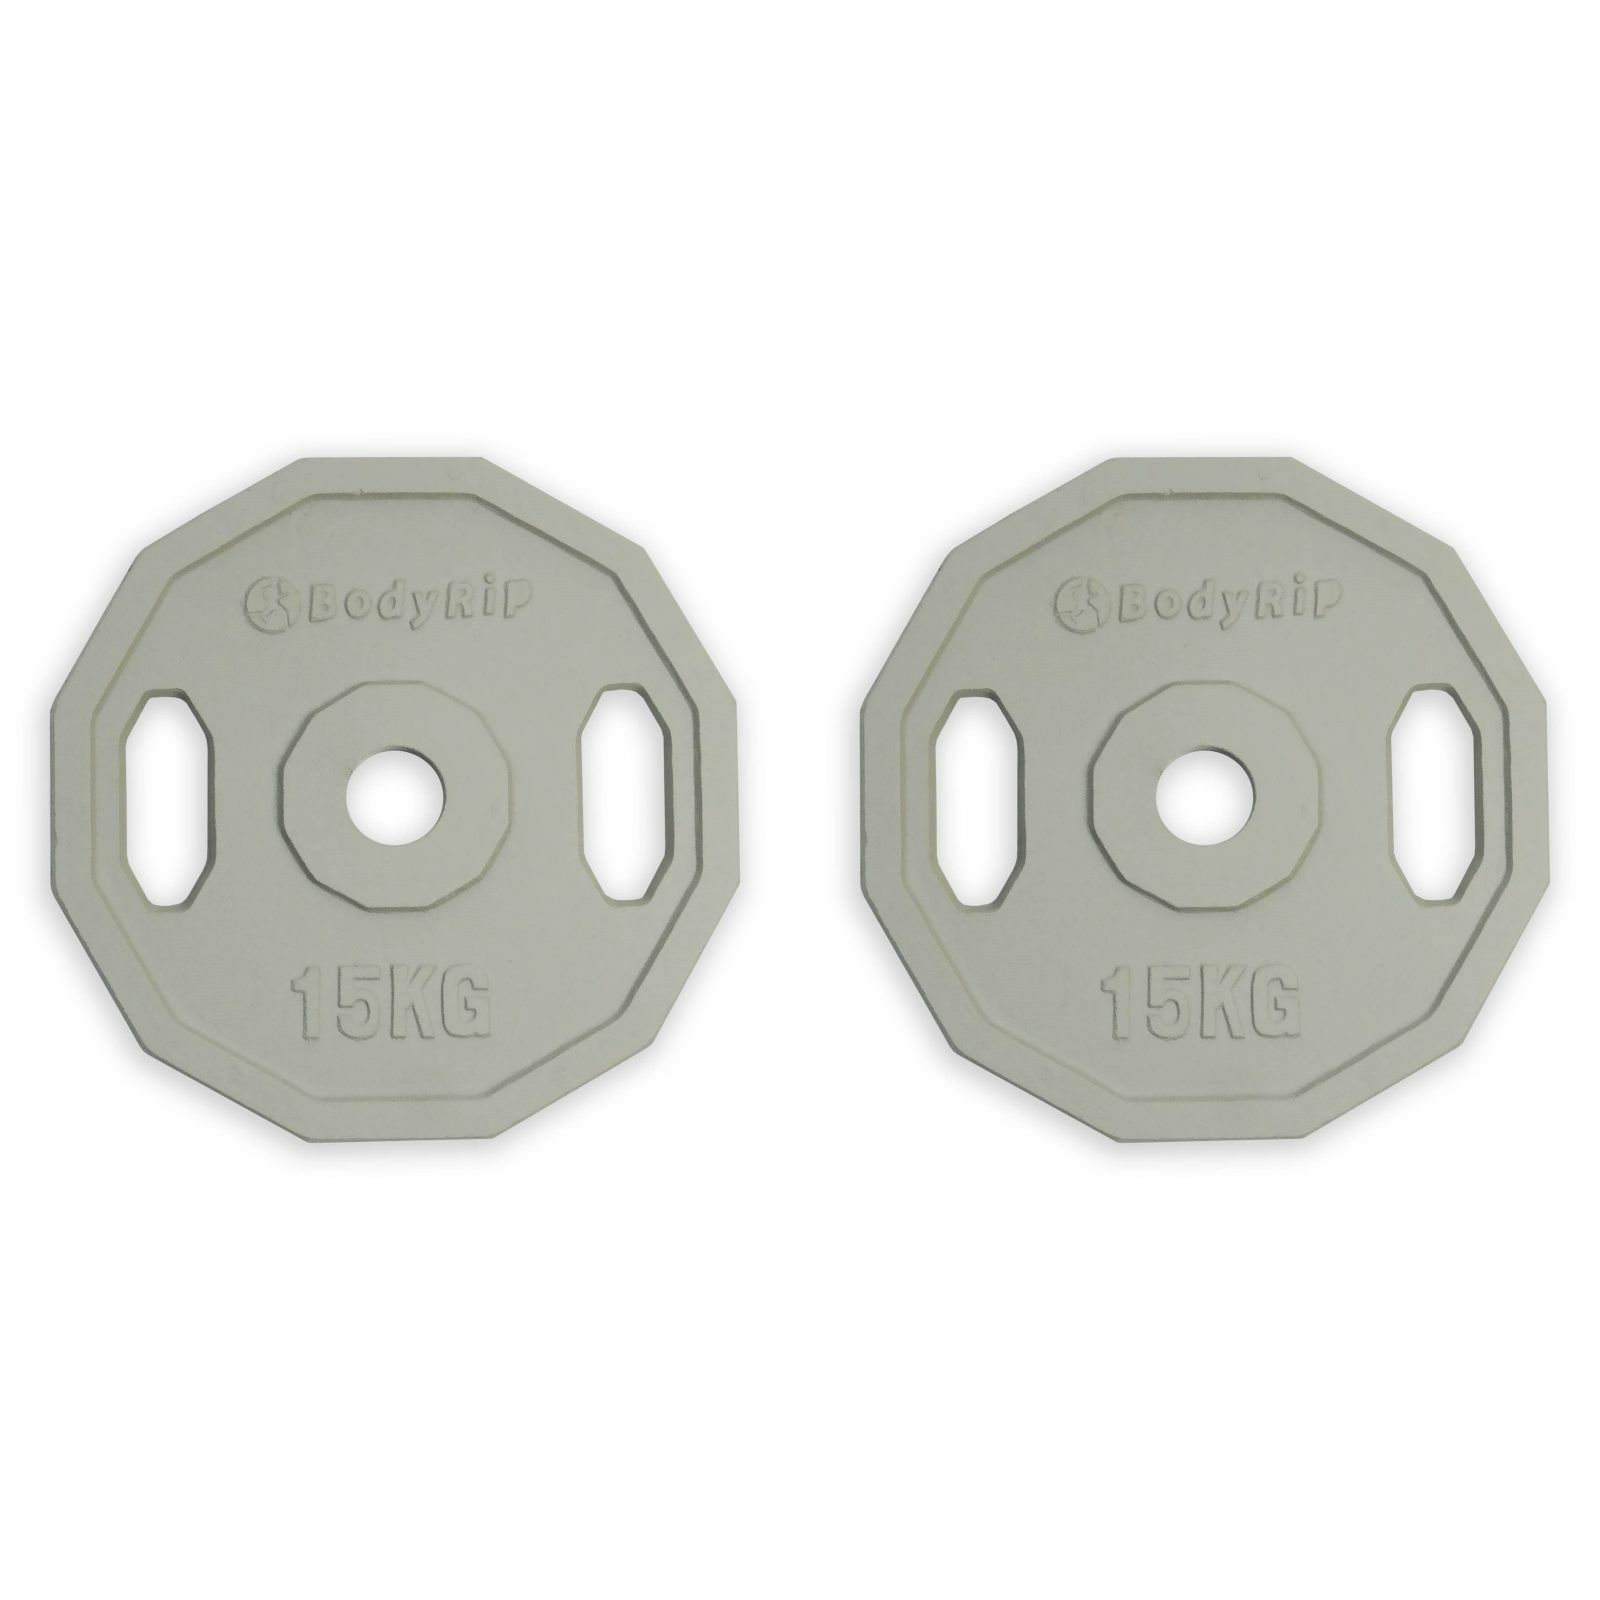 BodyRip Olympic 2 Inch Polygonal Weight Plates 2 x 15KG Discs 12 Sided Shape